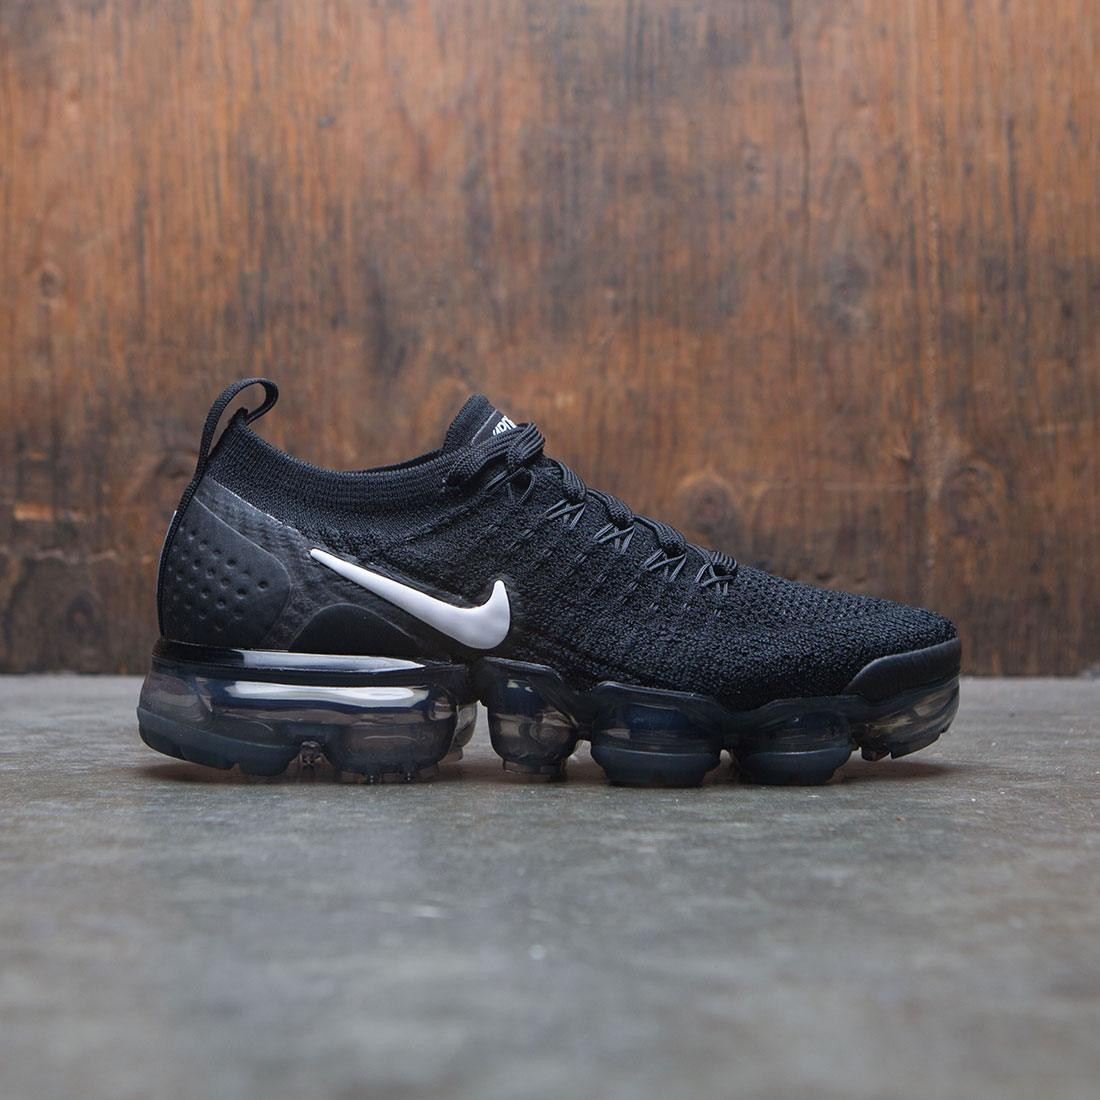 c5cfc237e010a Nike Women Air Vapormax Flyknit 2 (black / white-dark grey-metallic silver)